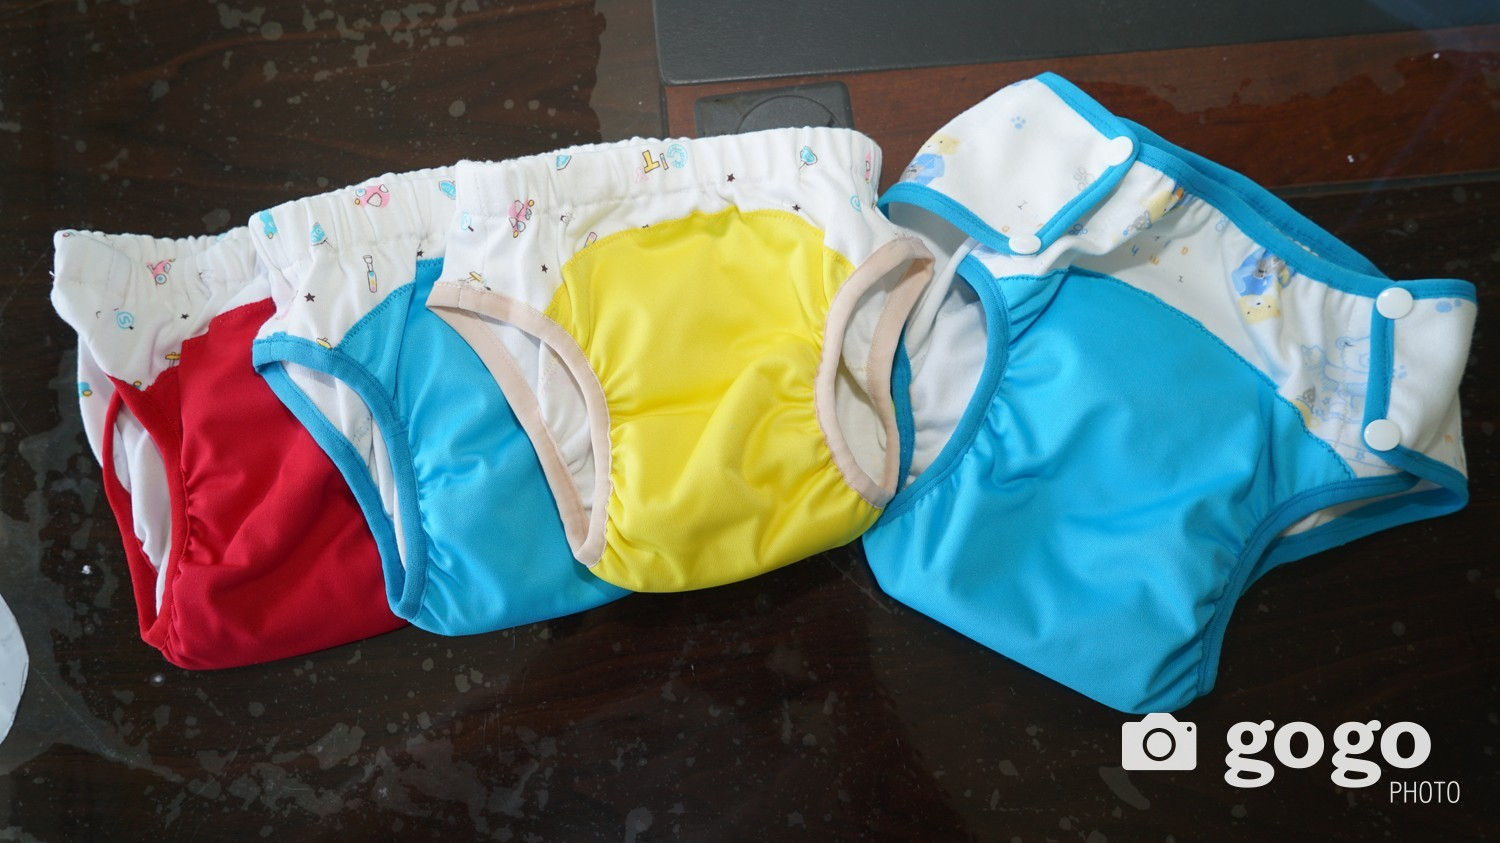 Potty pants. It is like a panty and easy to pull down and up for toddlers.